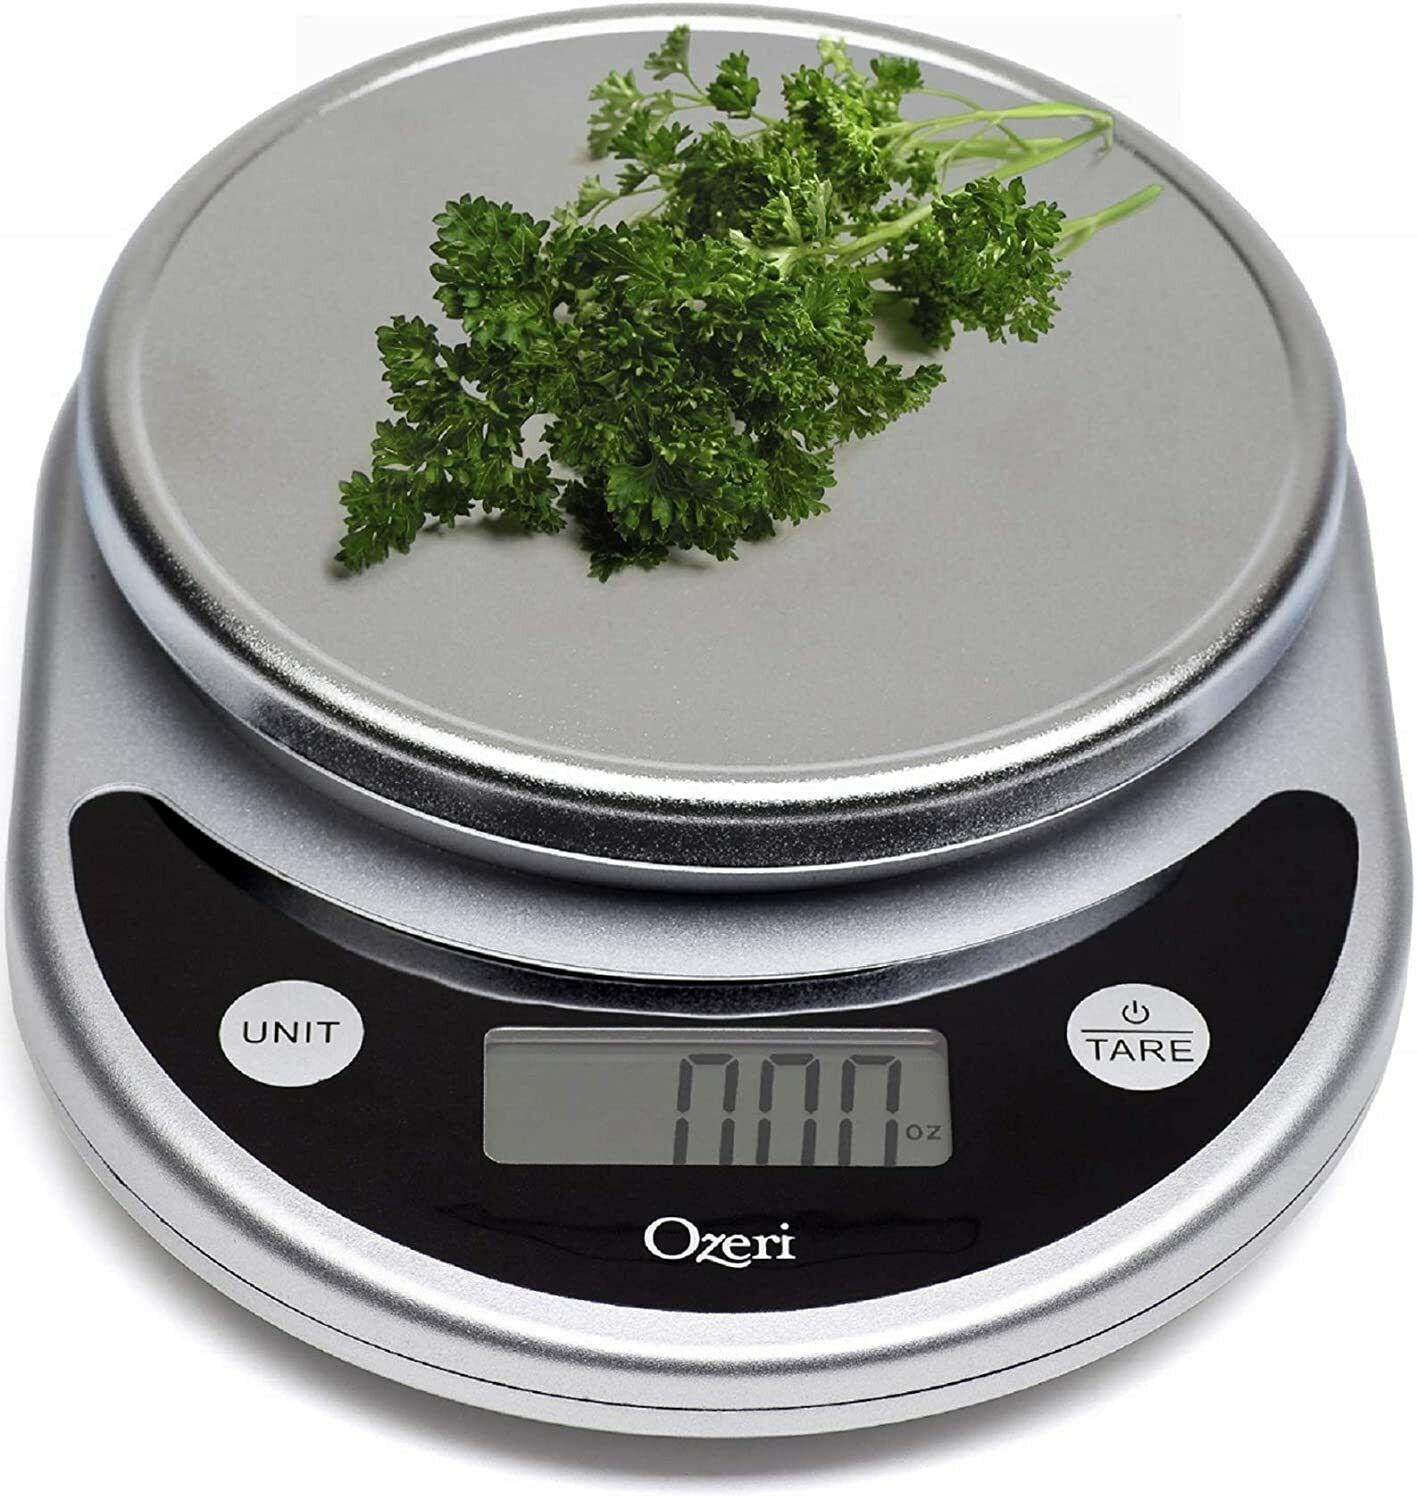 ZK14-S Pronto Digital Multifunction Kitchen and Food Scale,